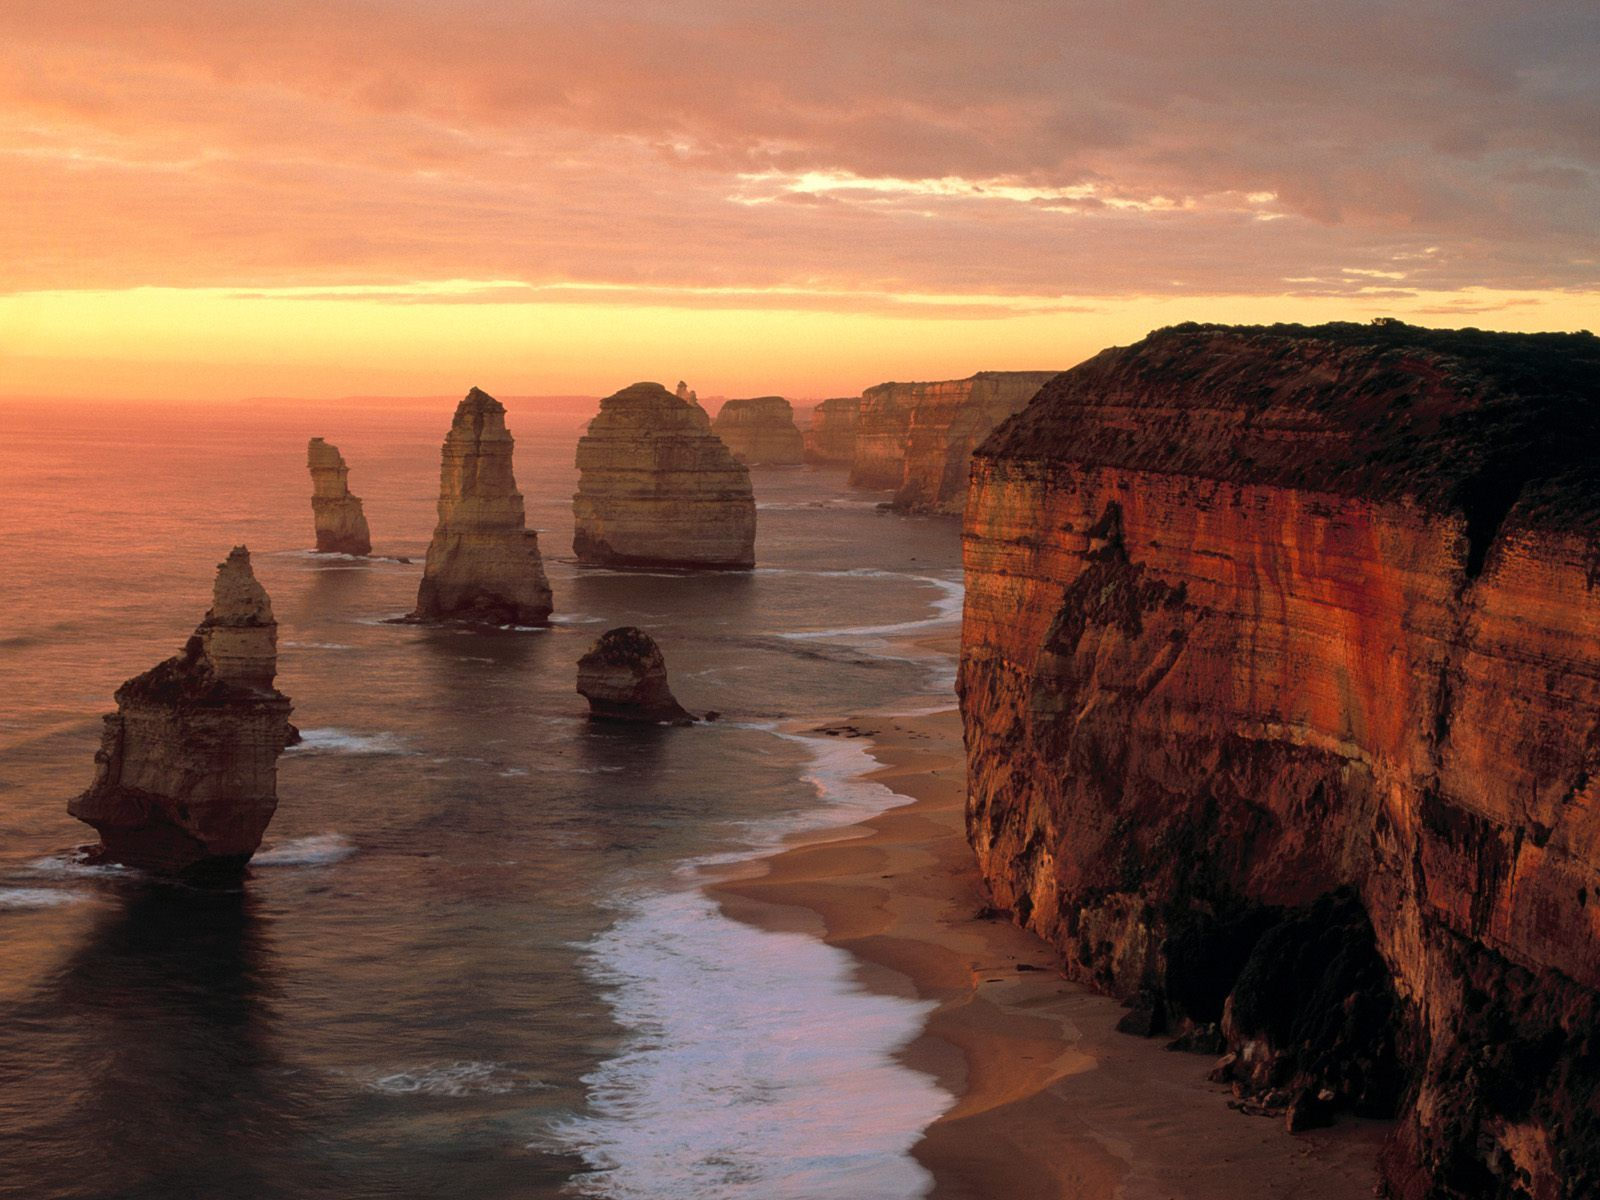 12 apostles australia | Places to see, Travel pictures, Places to travel